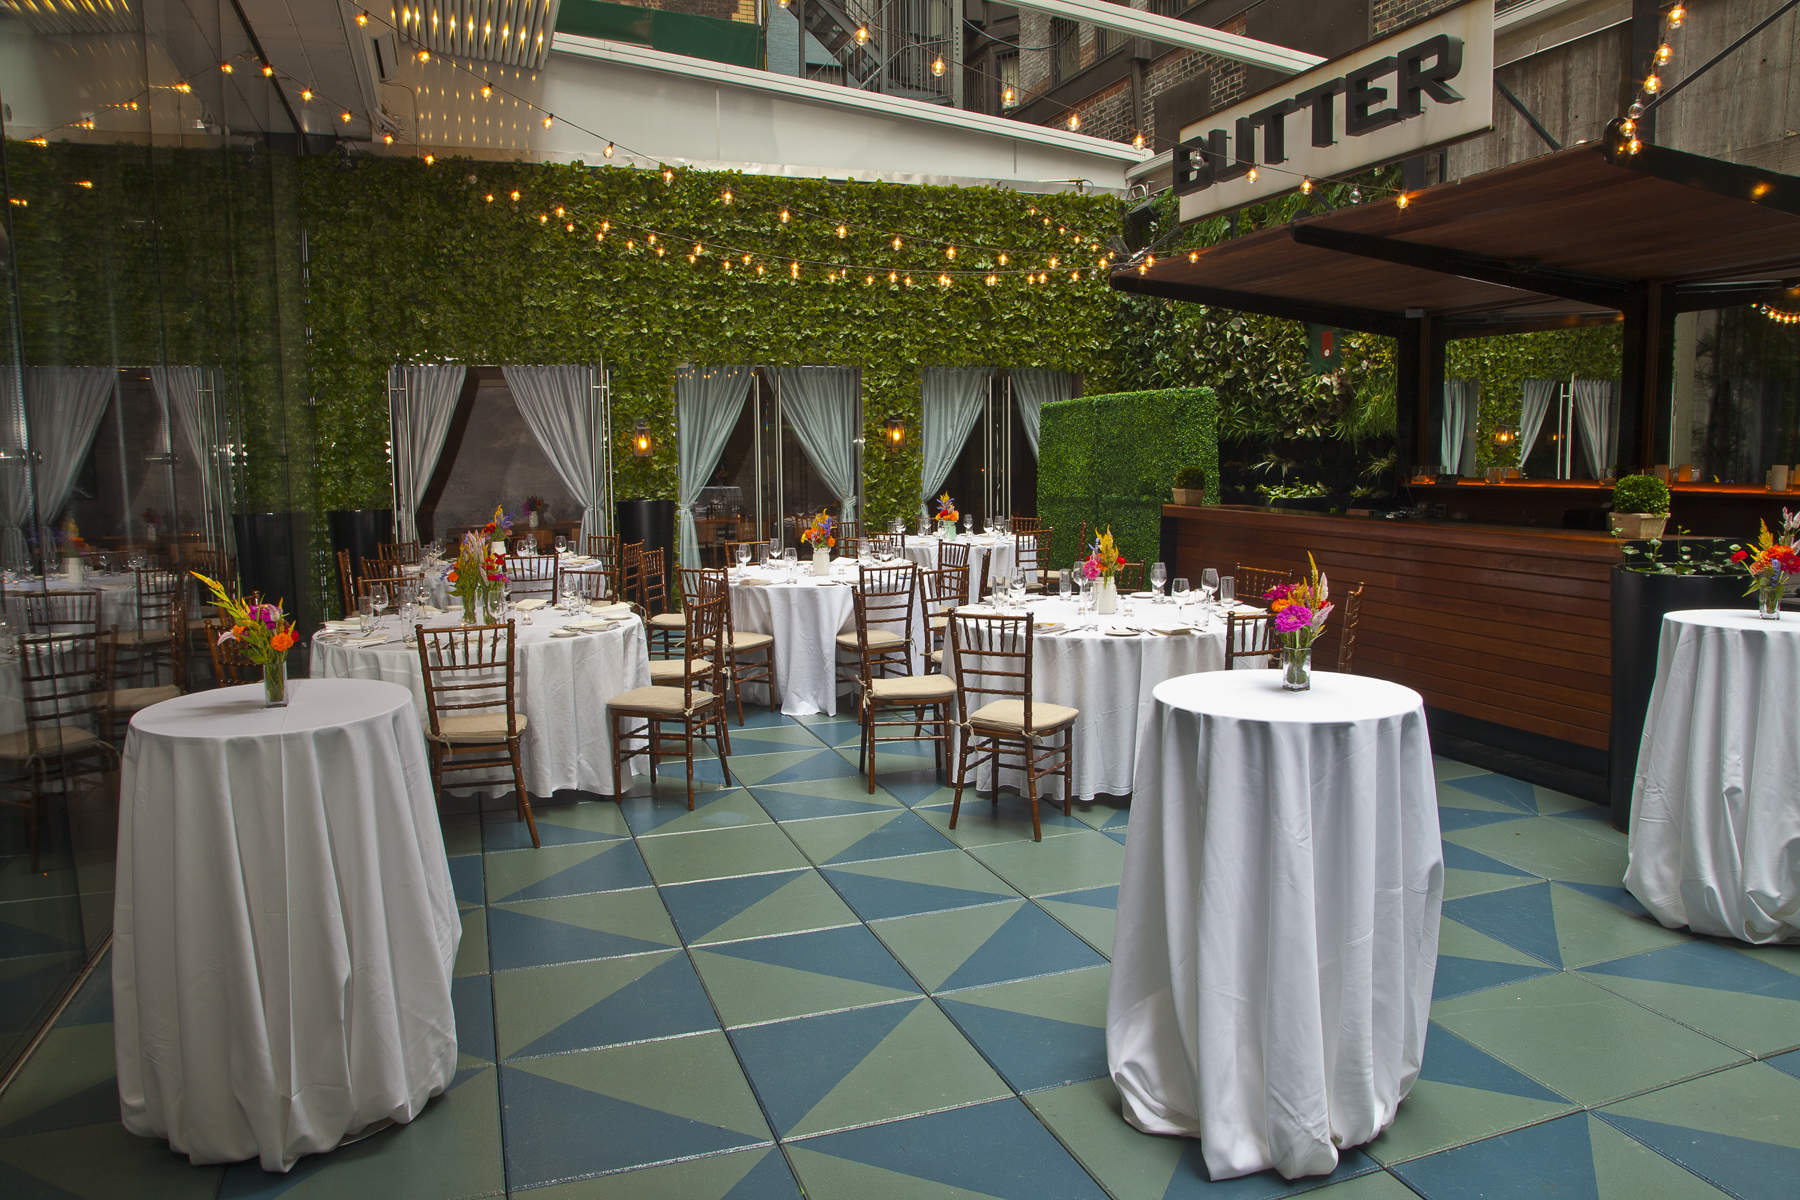 Butter Midtown event space in New York City, NYC, NY/NJ Area